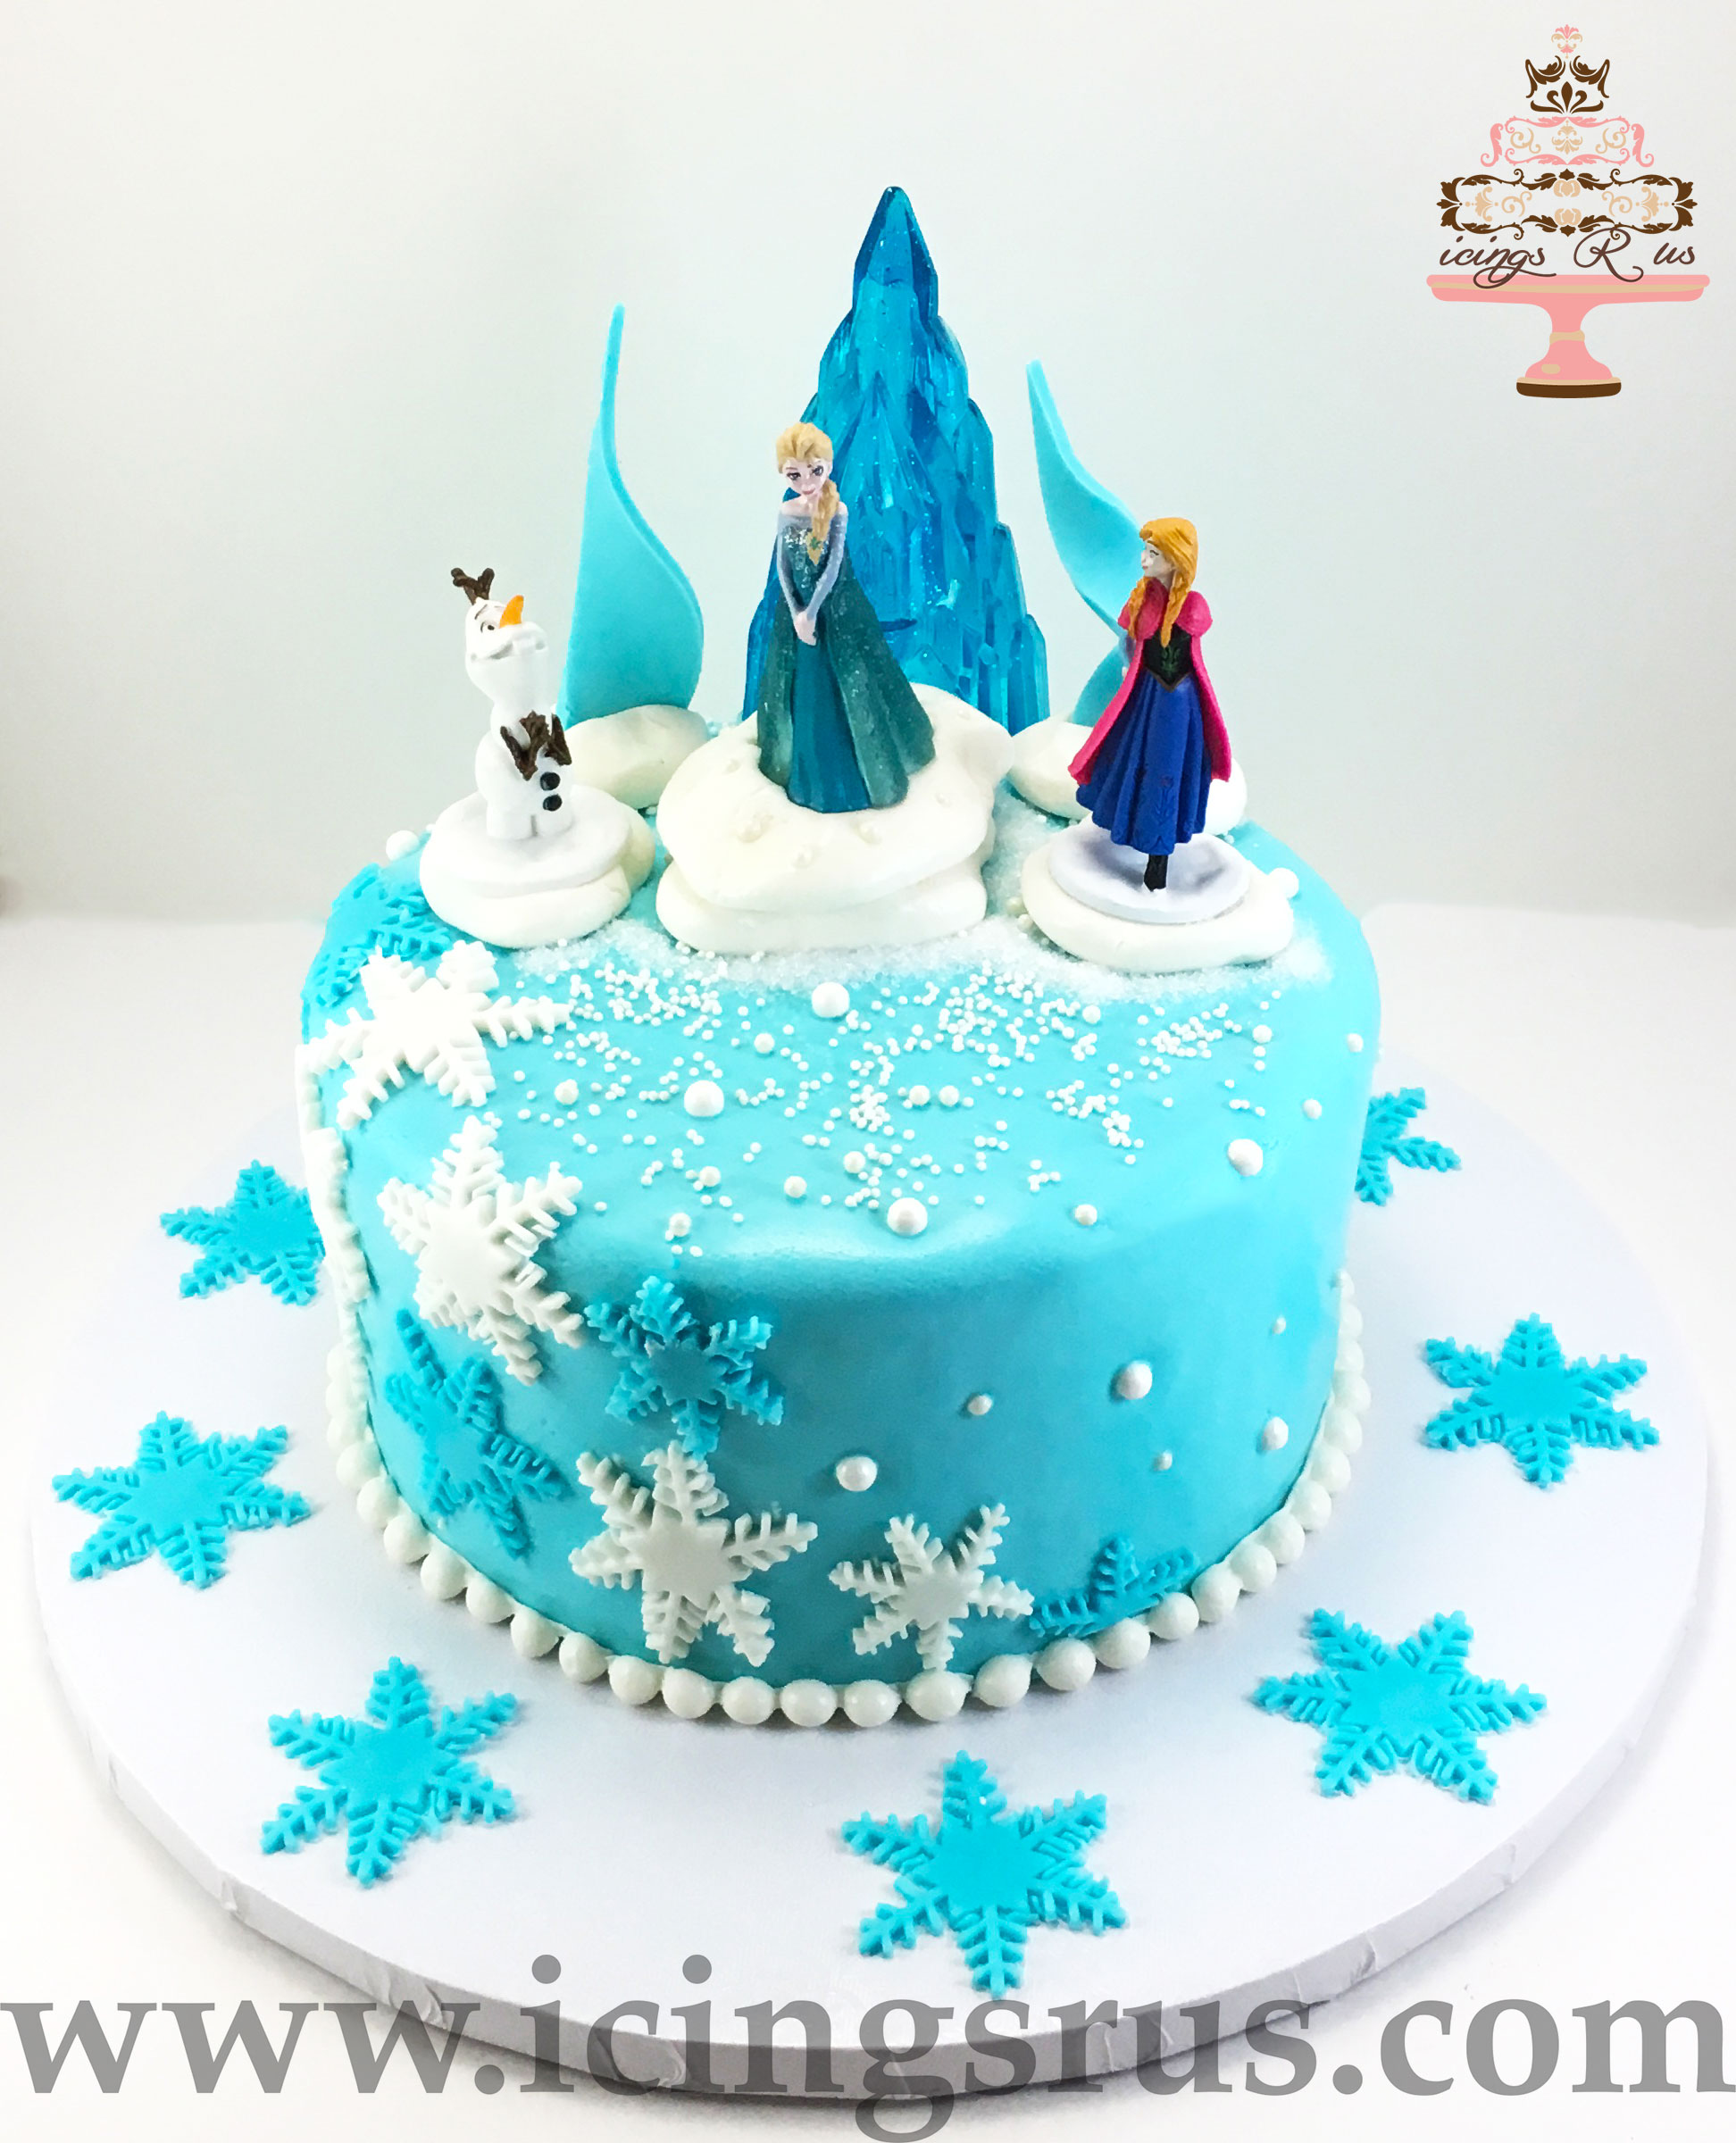 frozen-glass-ice-castle-anna-elsa-birthday-cake